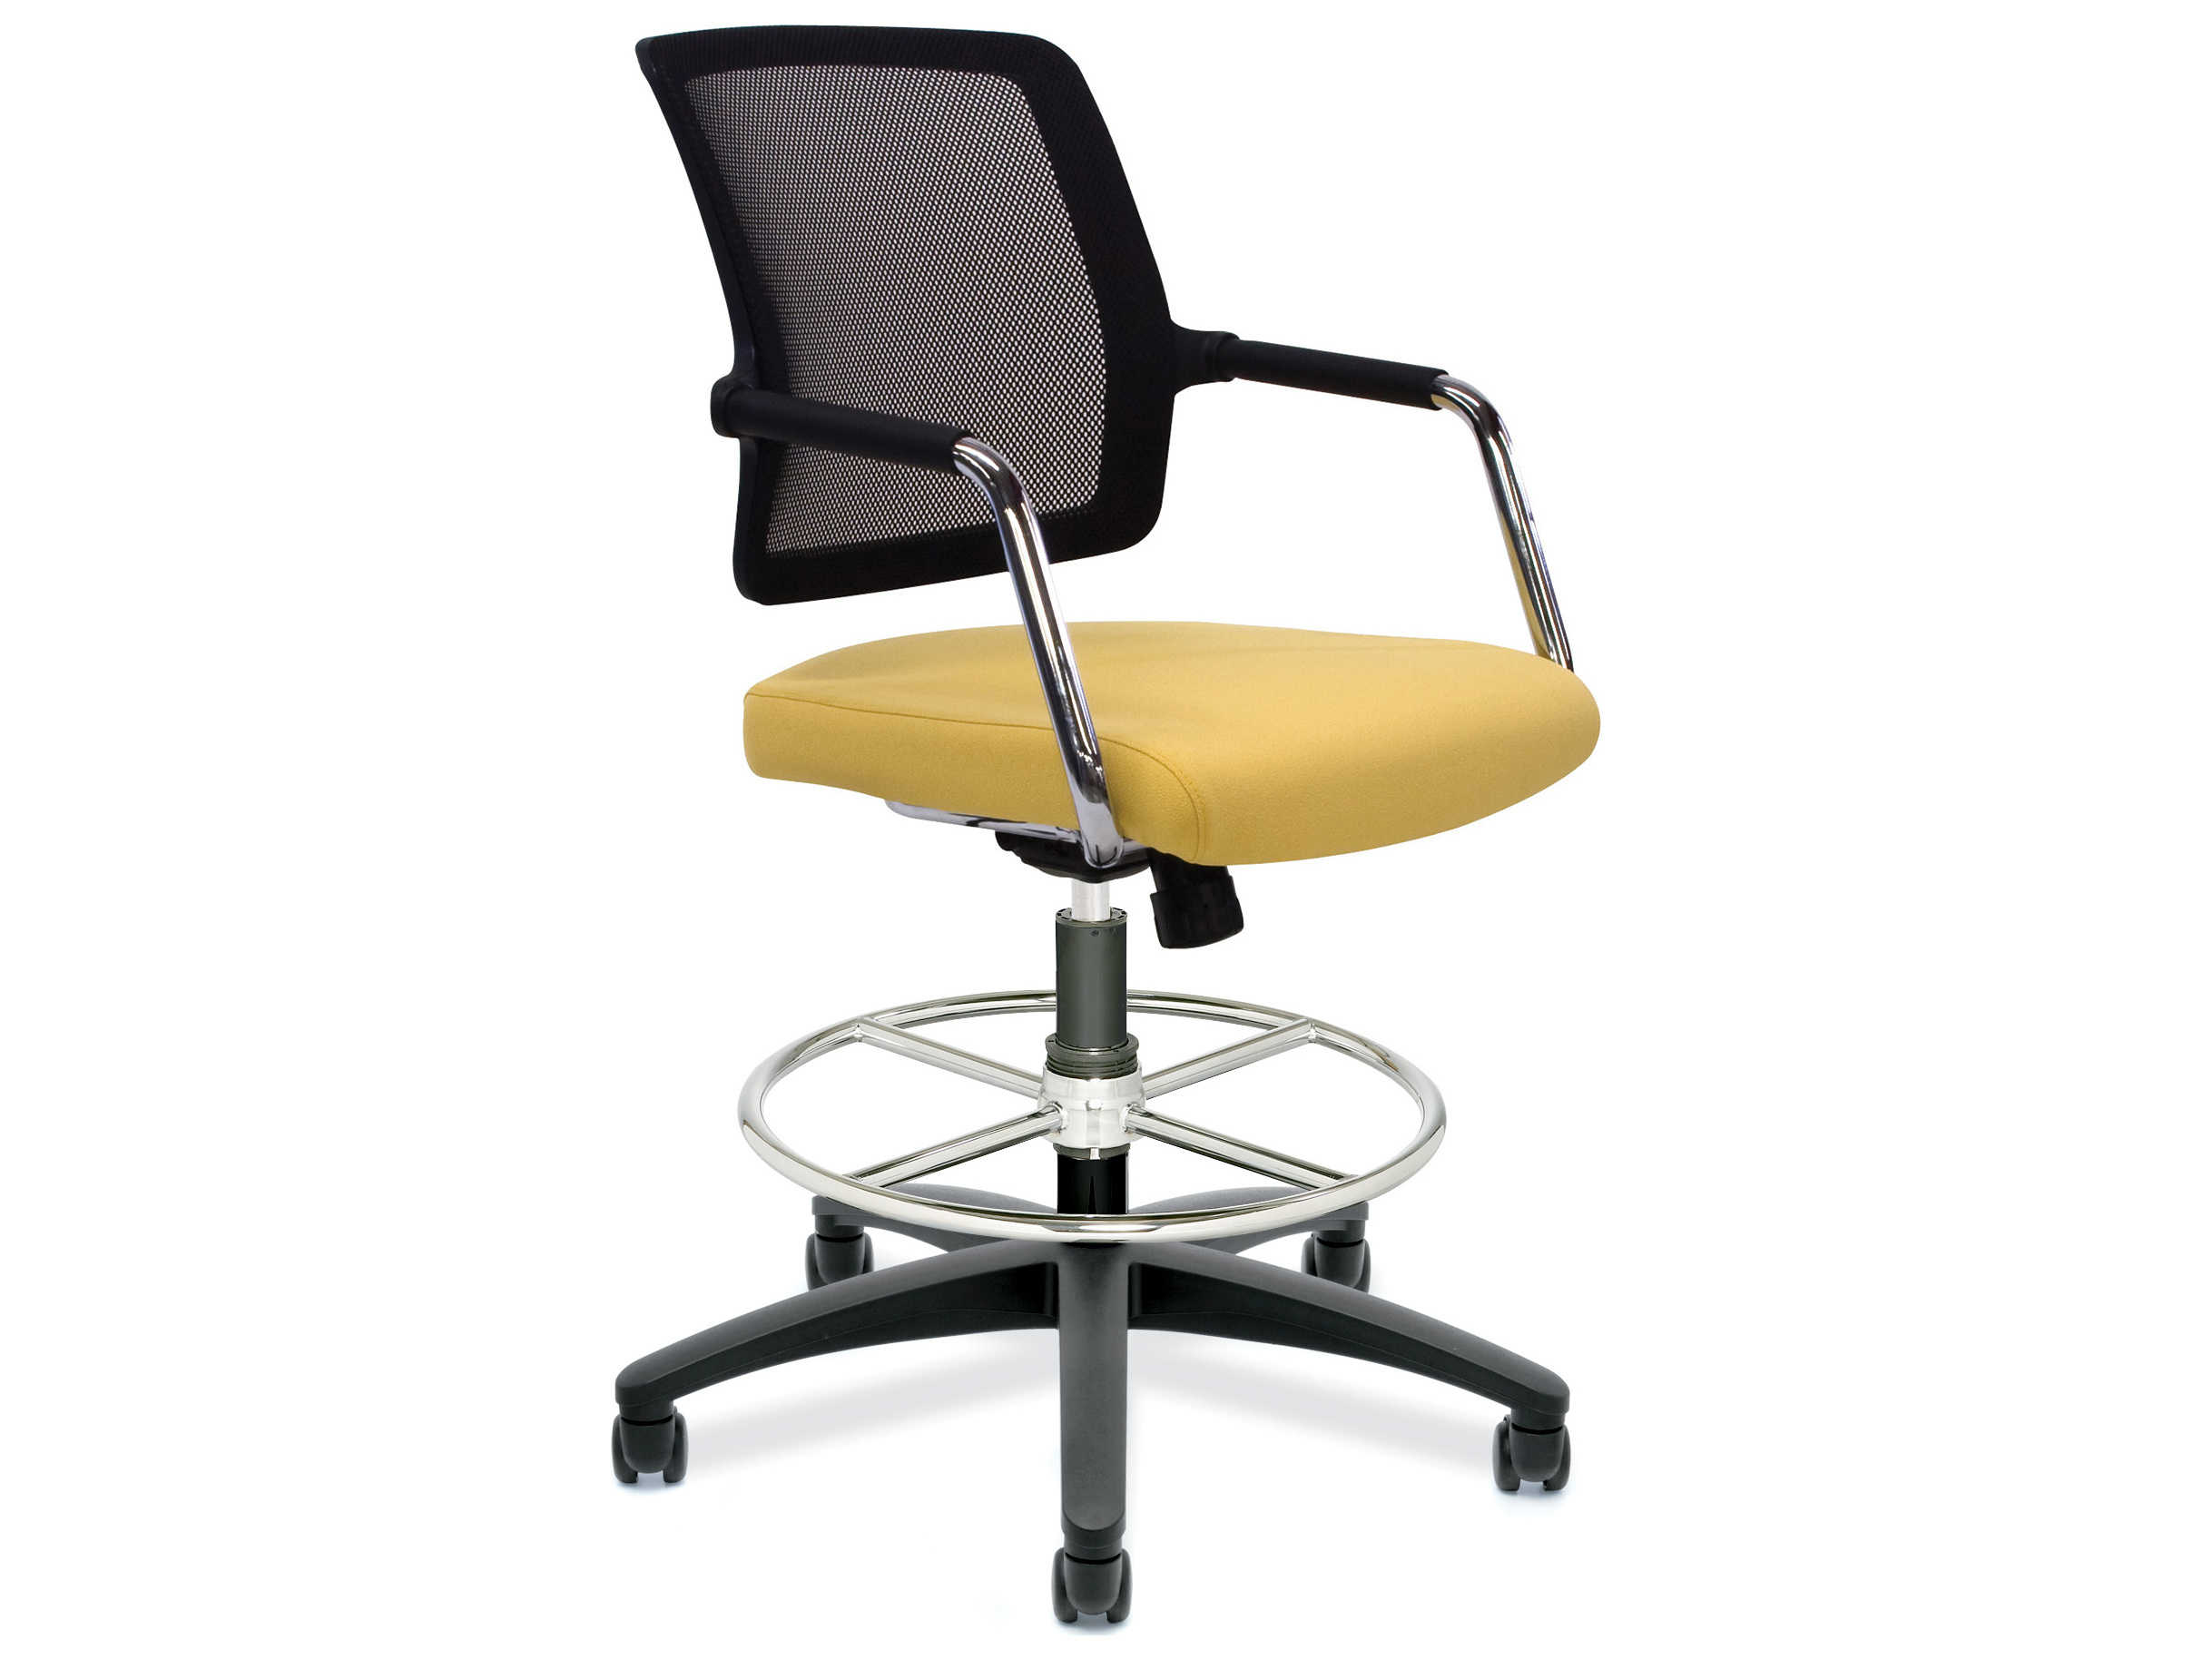 Dauphin Chairs Dauphin Logan Swivel Raised Back Medium Chair